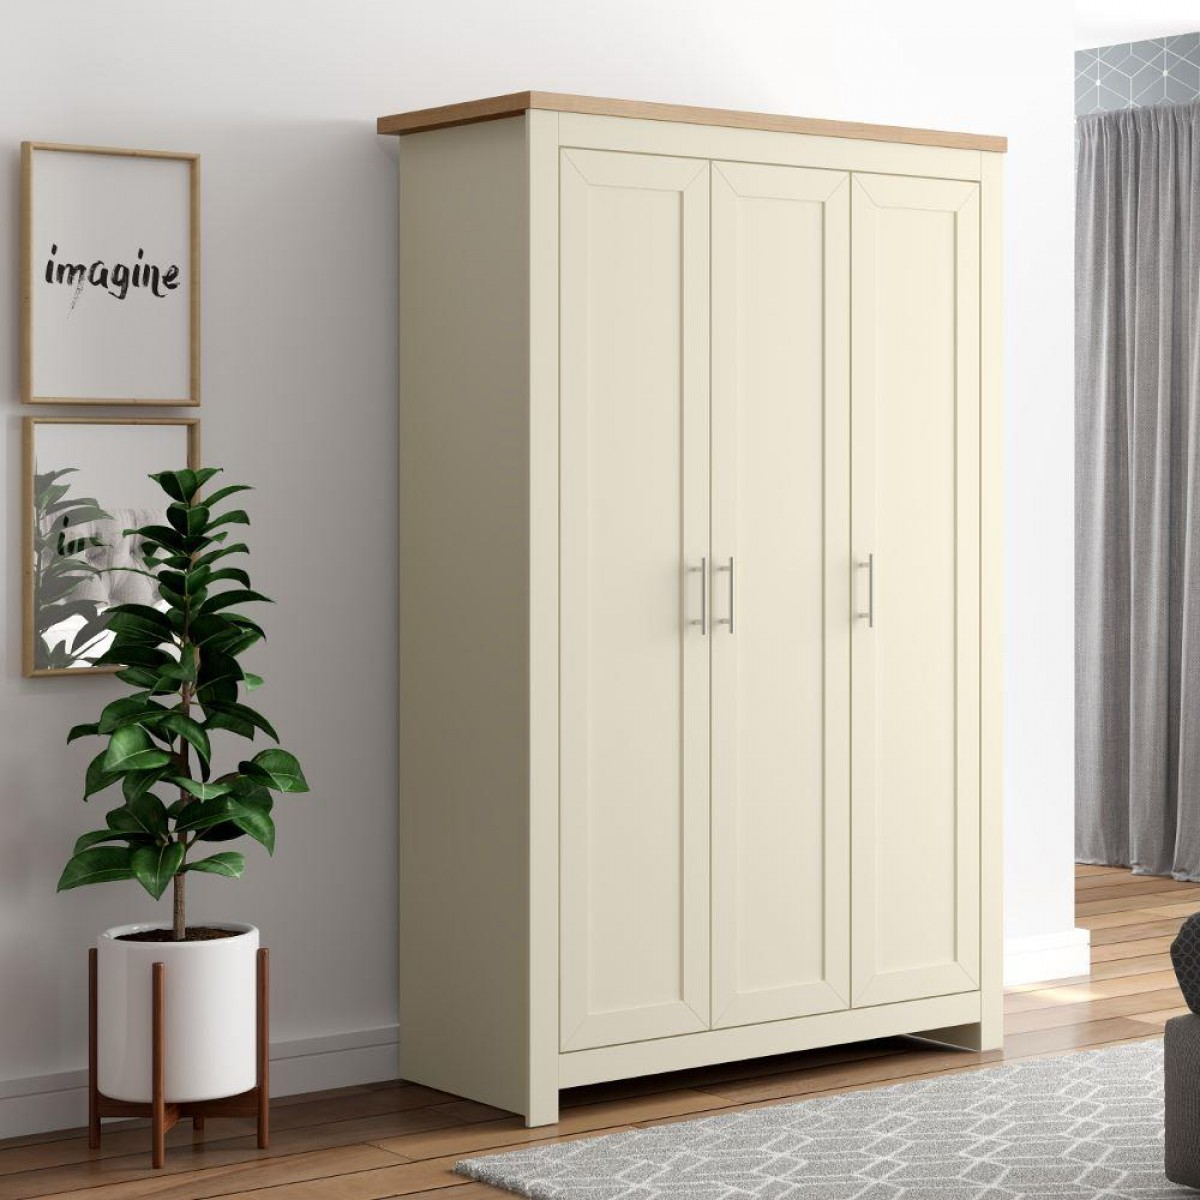 Winchester Cream and Oak 3 Door Wardrobe